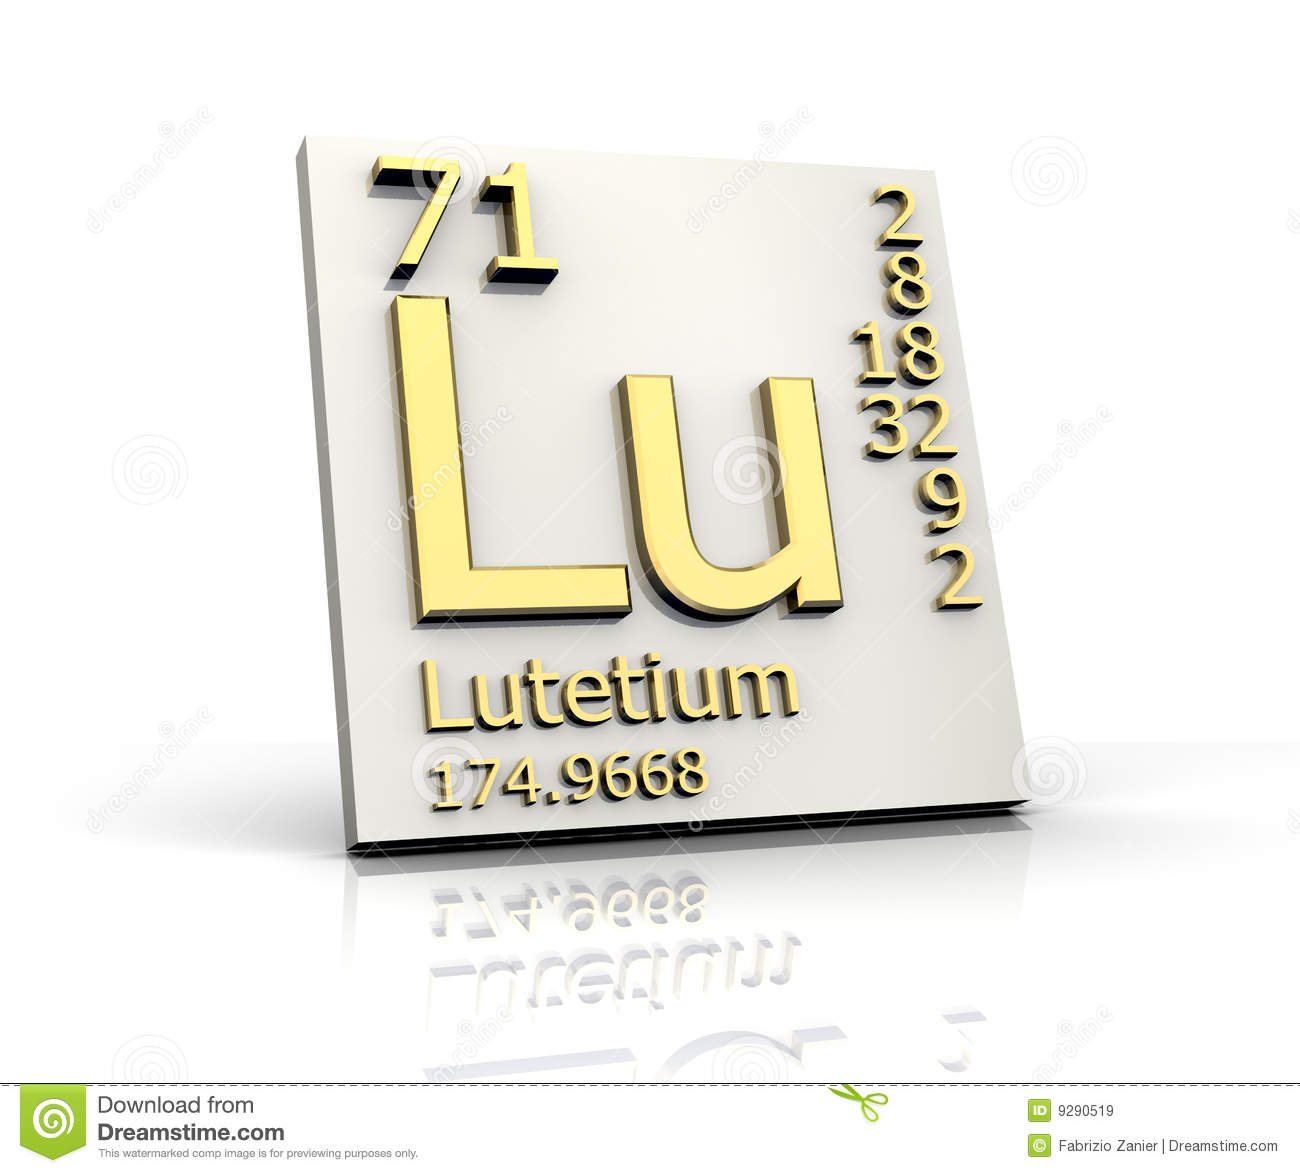 Periodic table lutetium images periodic table images periodic table lutetium choice image periodic table images periodic table lutetium images periodic table images lutetium gamestrikefo Images